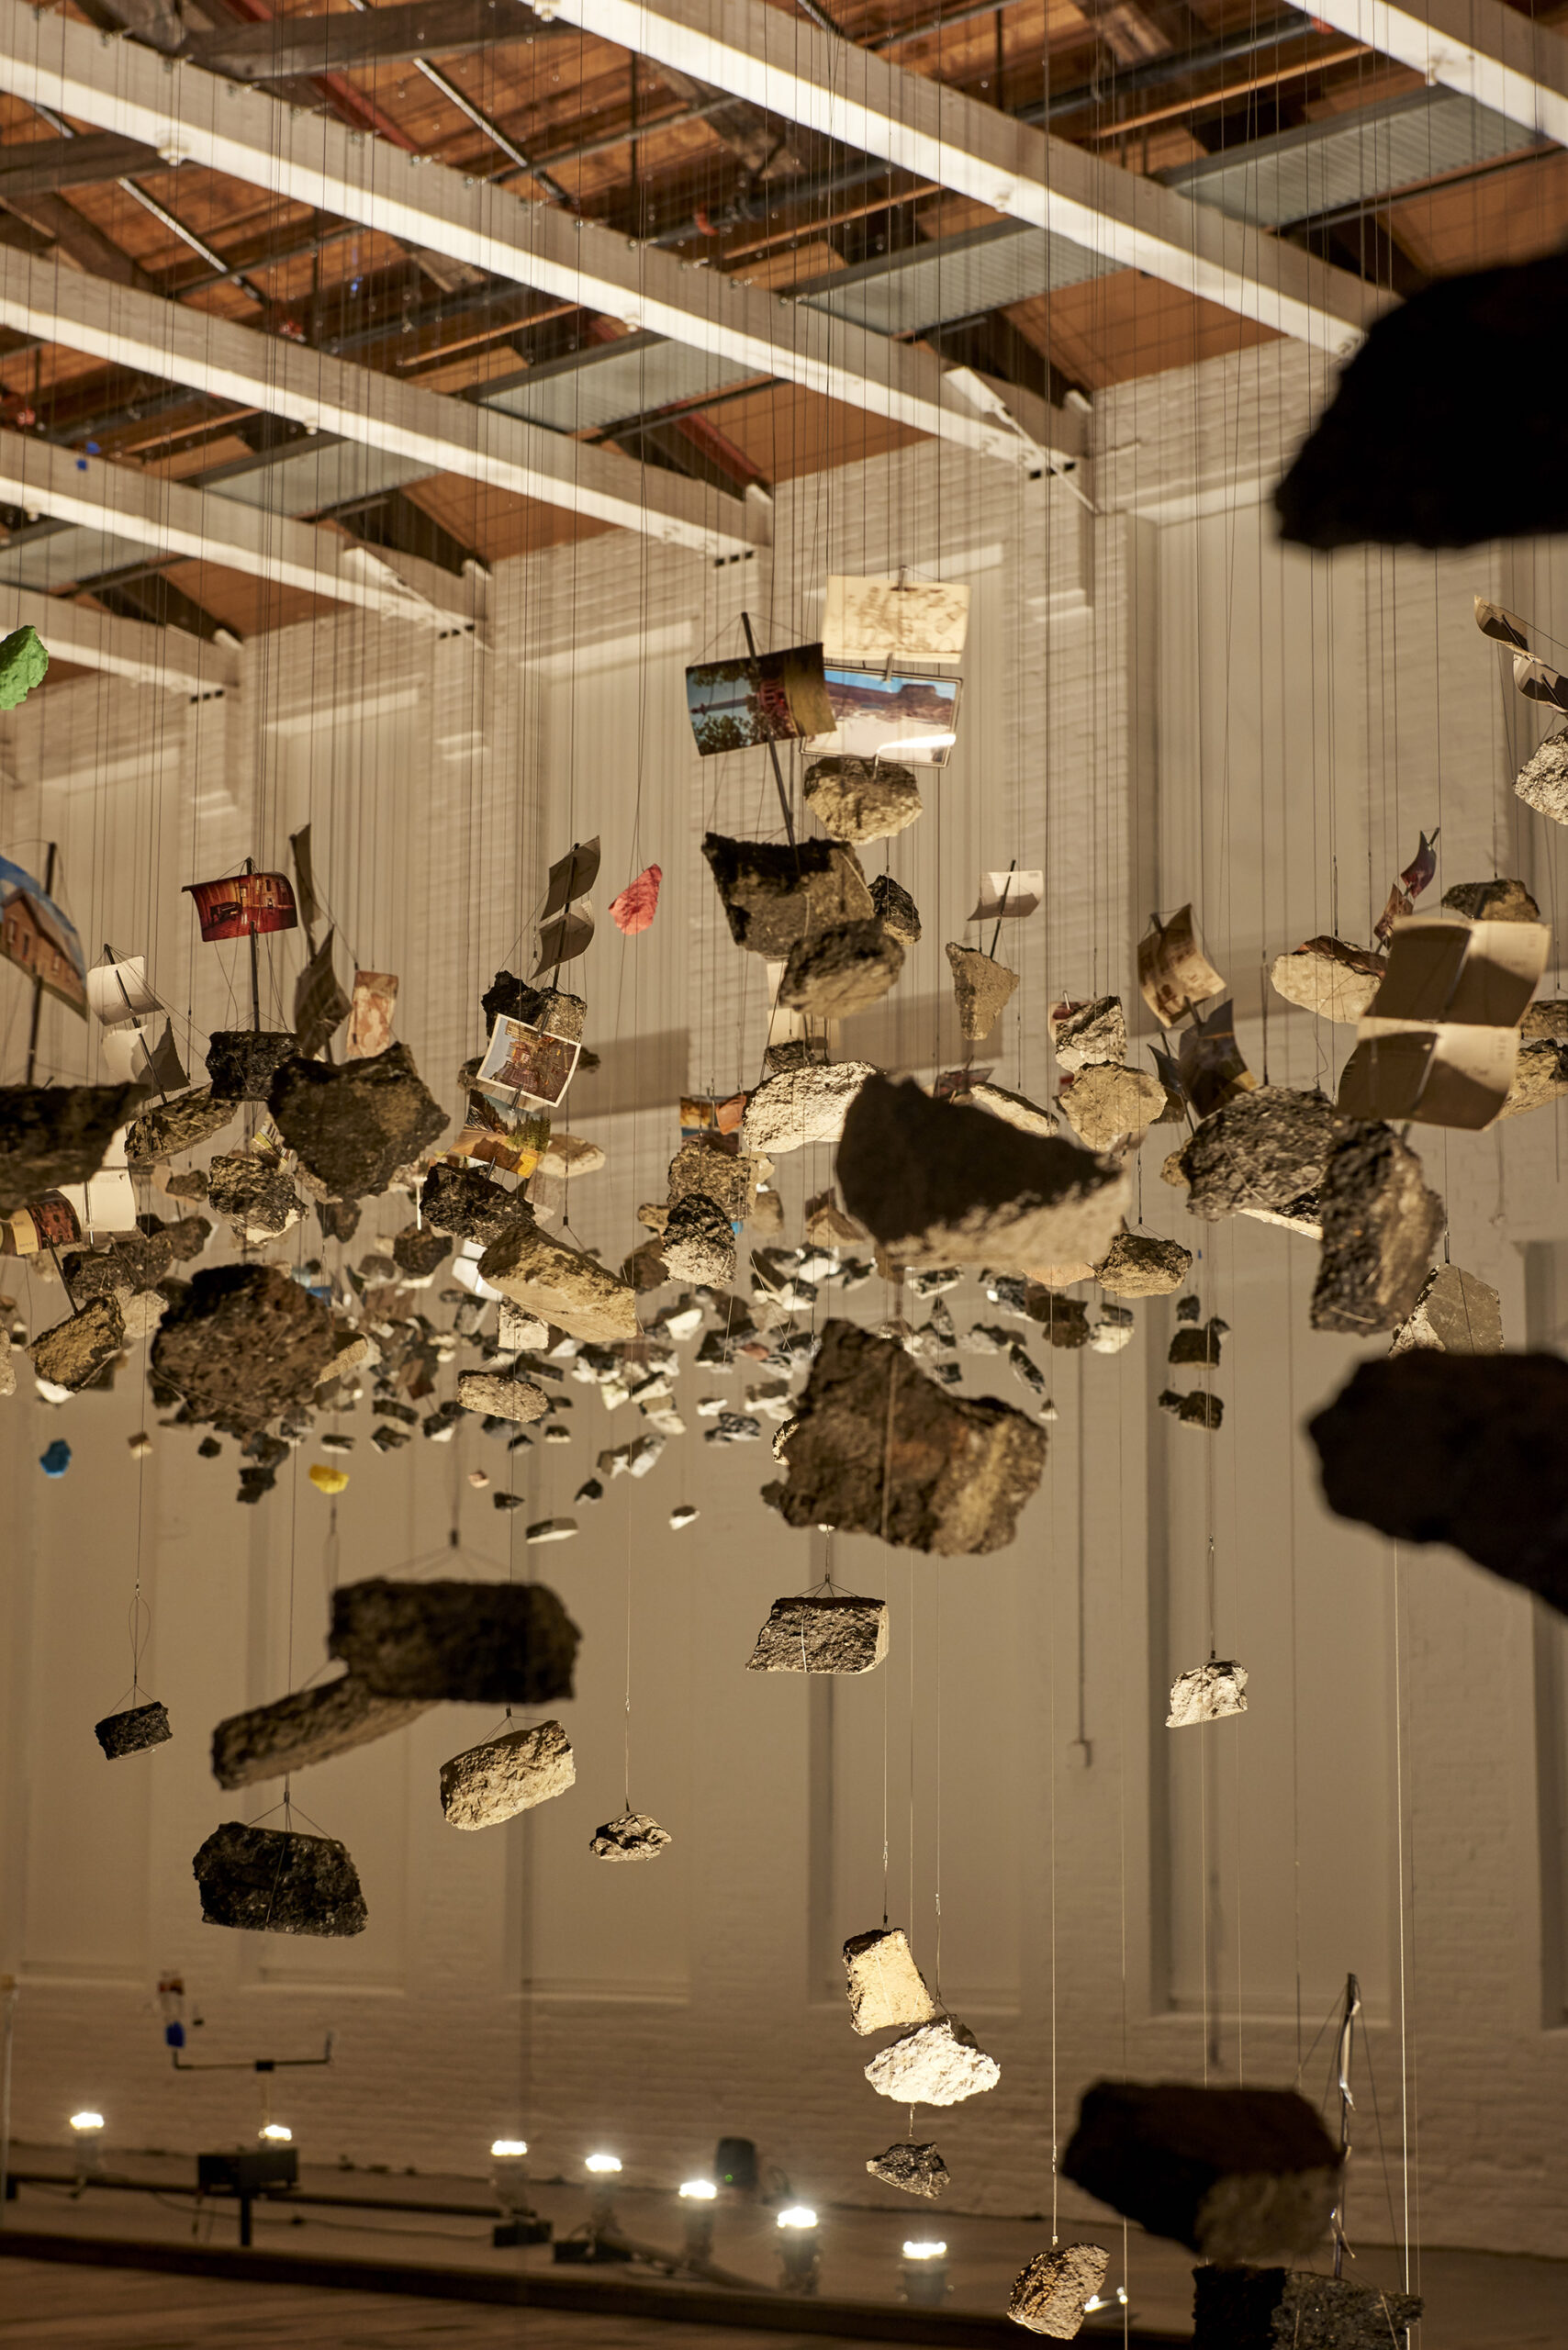 A Sprawling Installation Explores the Power of Protest as It Floats Above a MASS MoCA Gallery